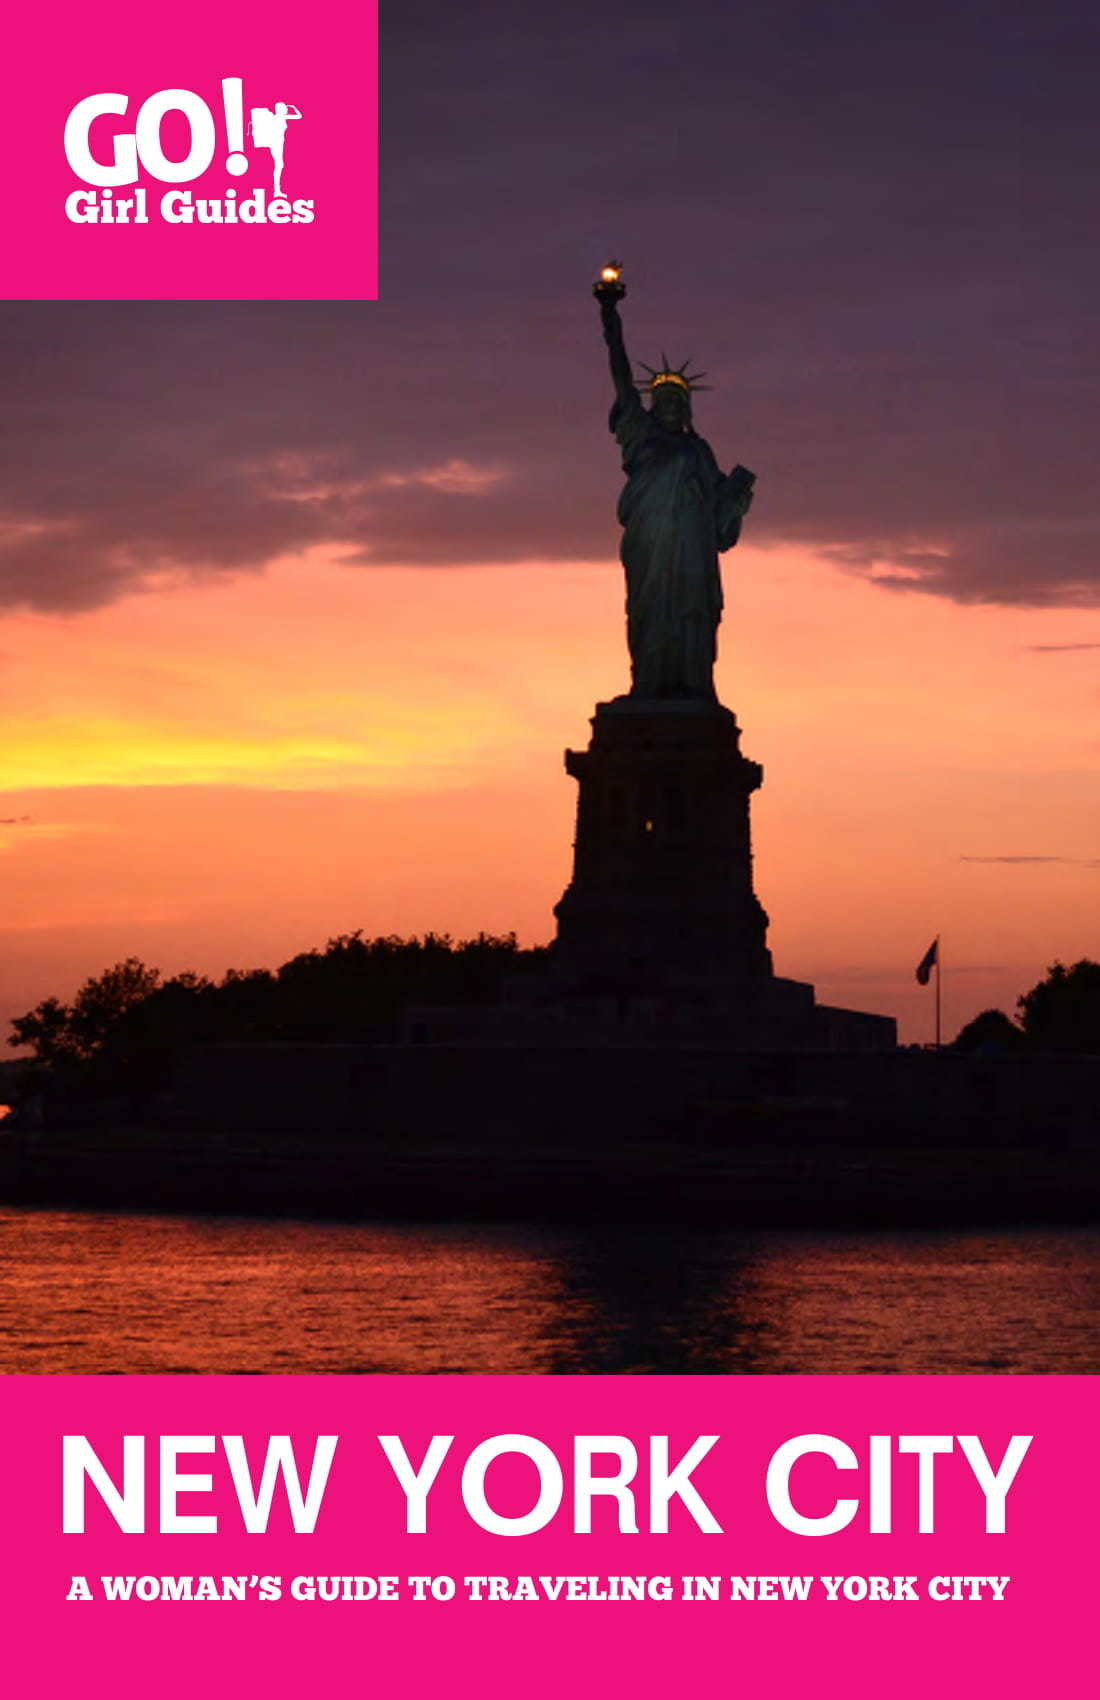 New York City: A Woman's Guide to Traveling Solo in New York City 00002